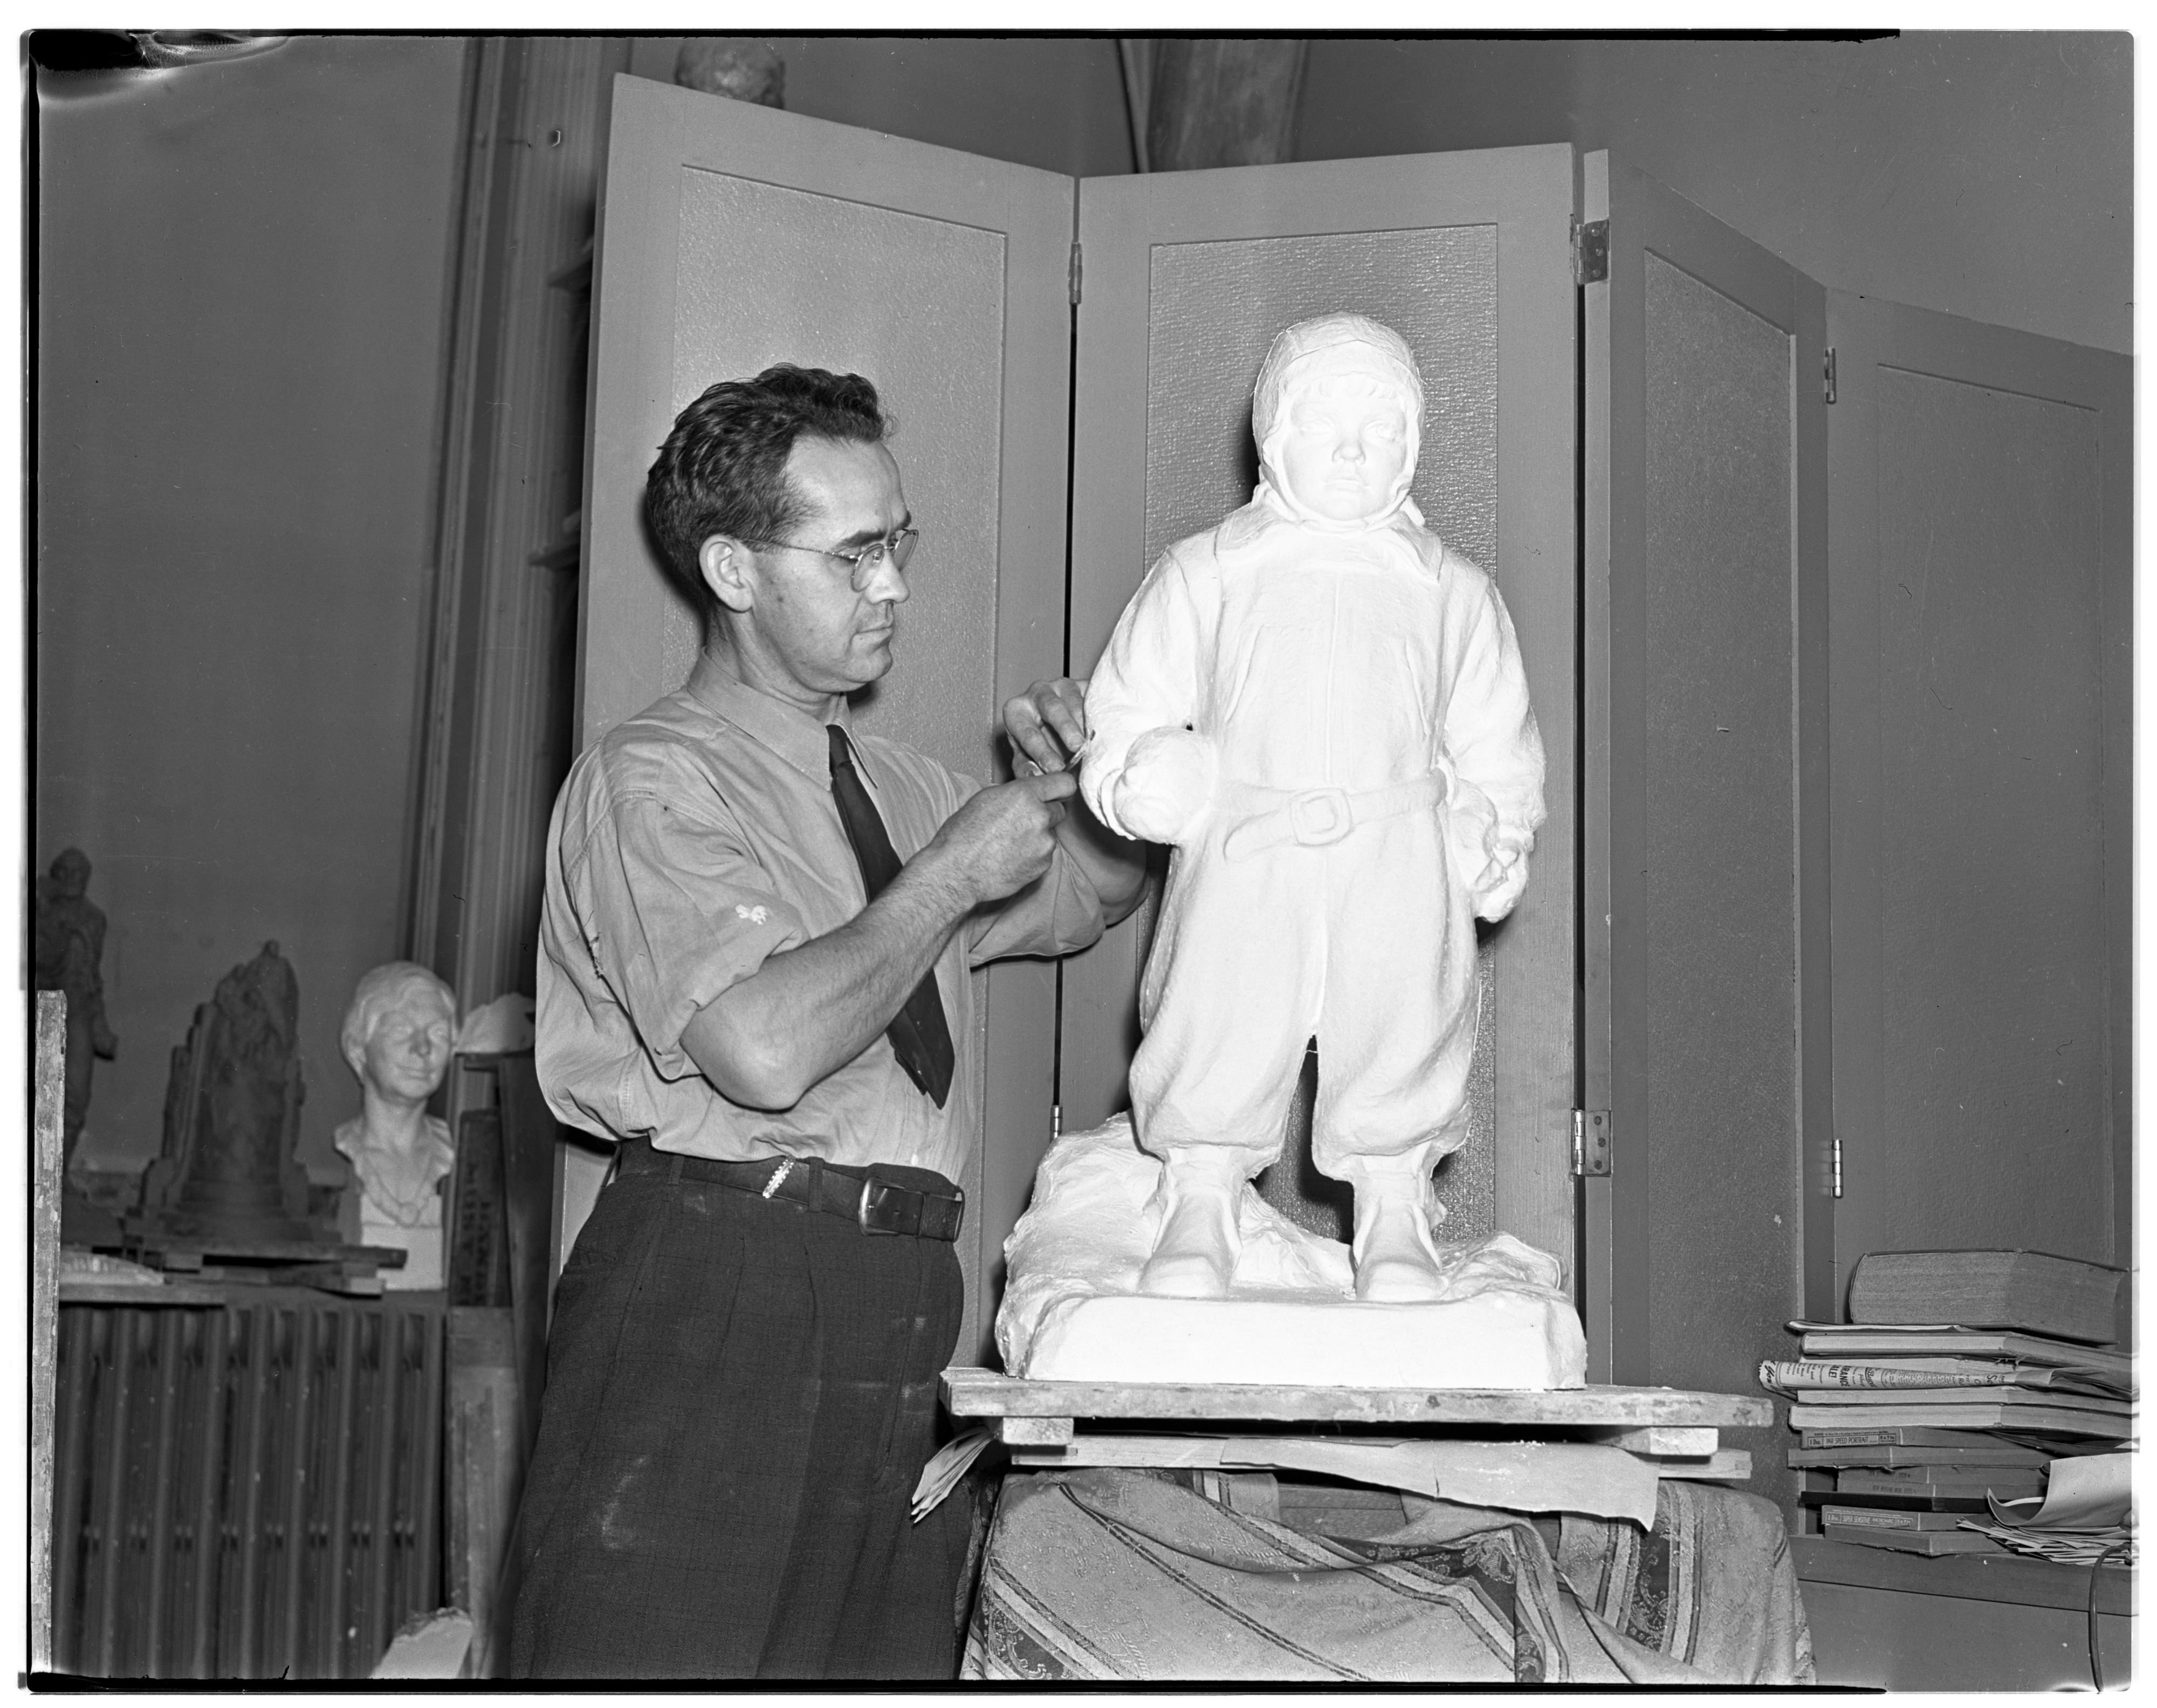 Avard T. Fairbanks, Sculptor and University of Michigan instructor, April 1938 image